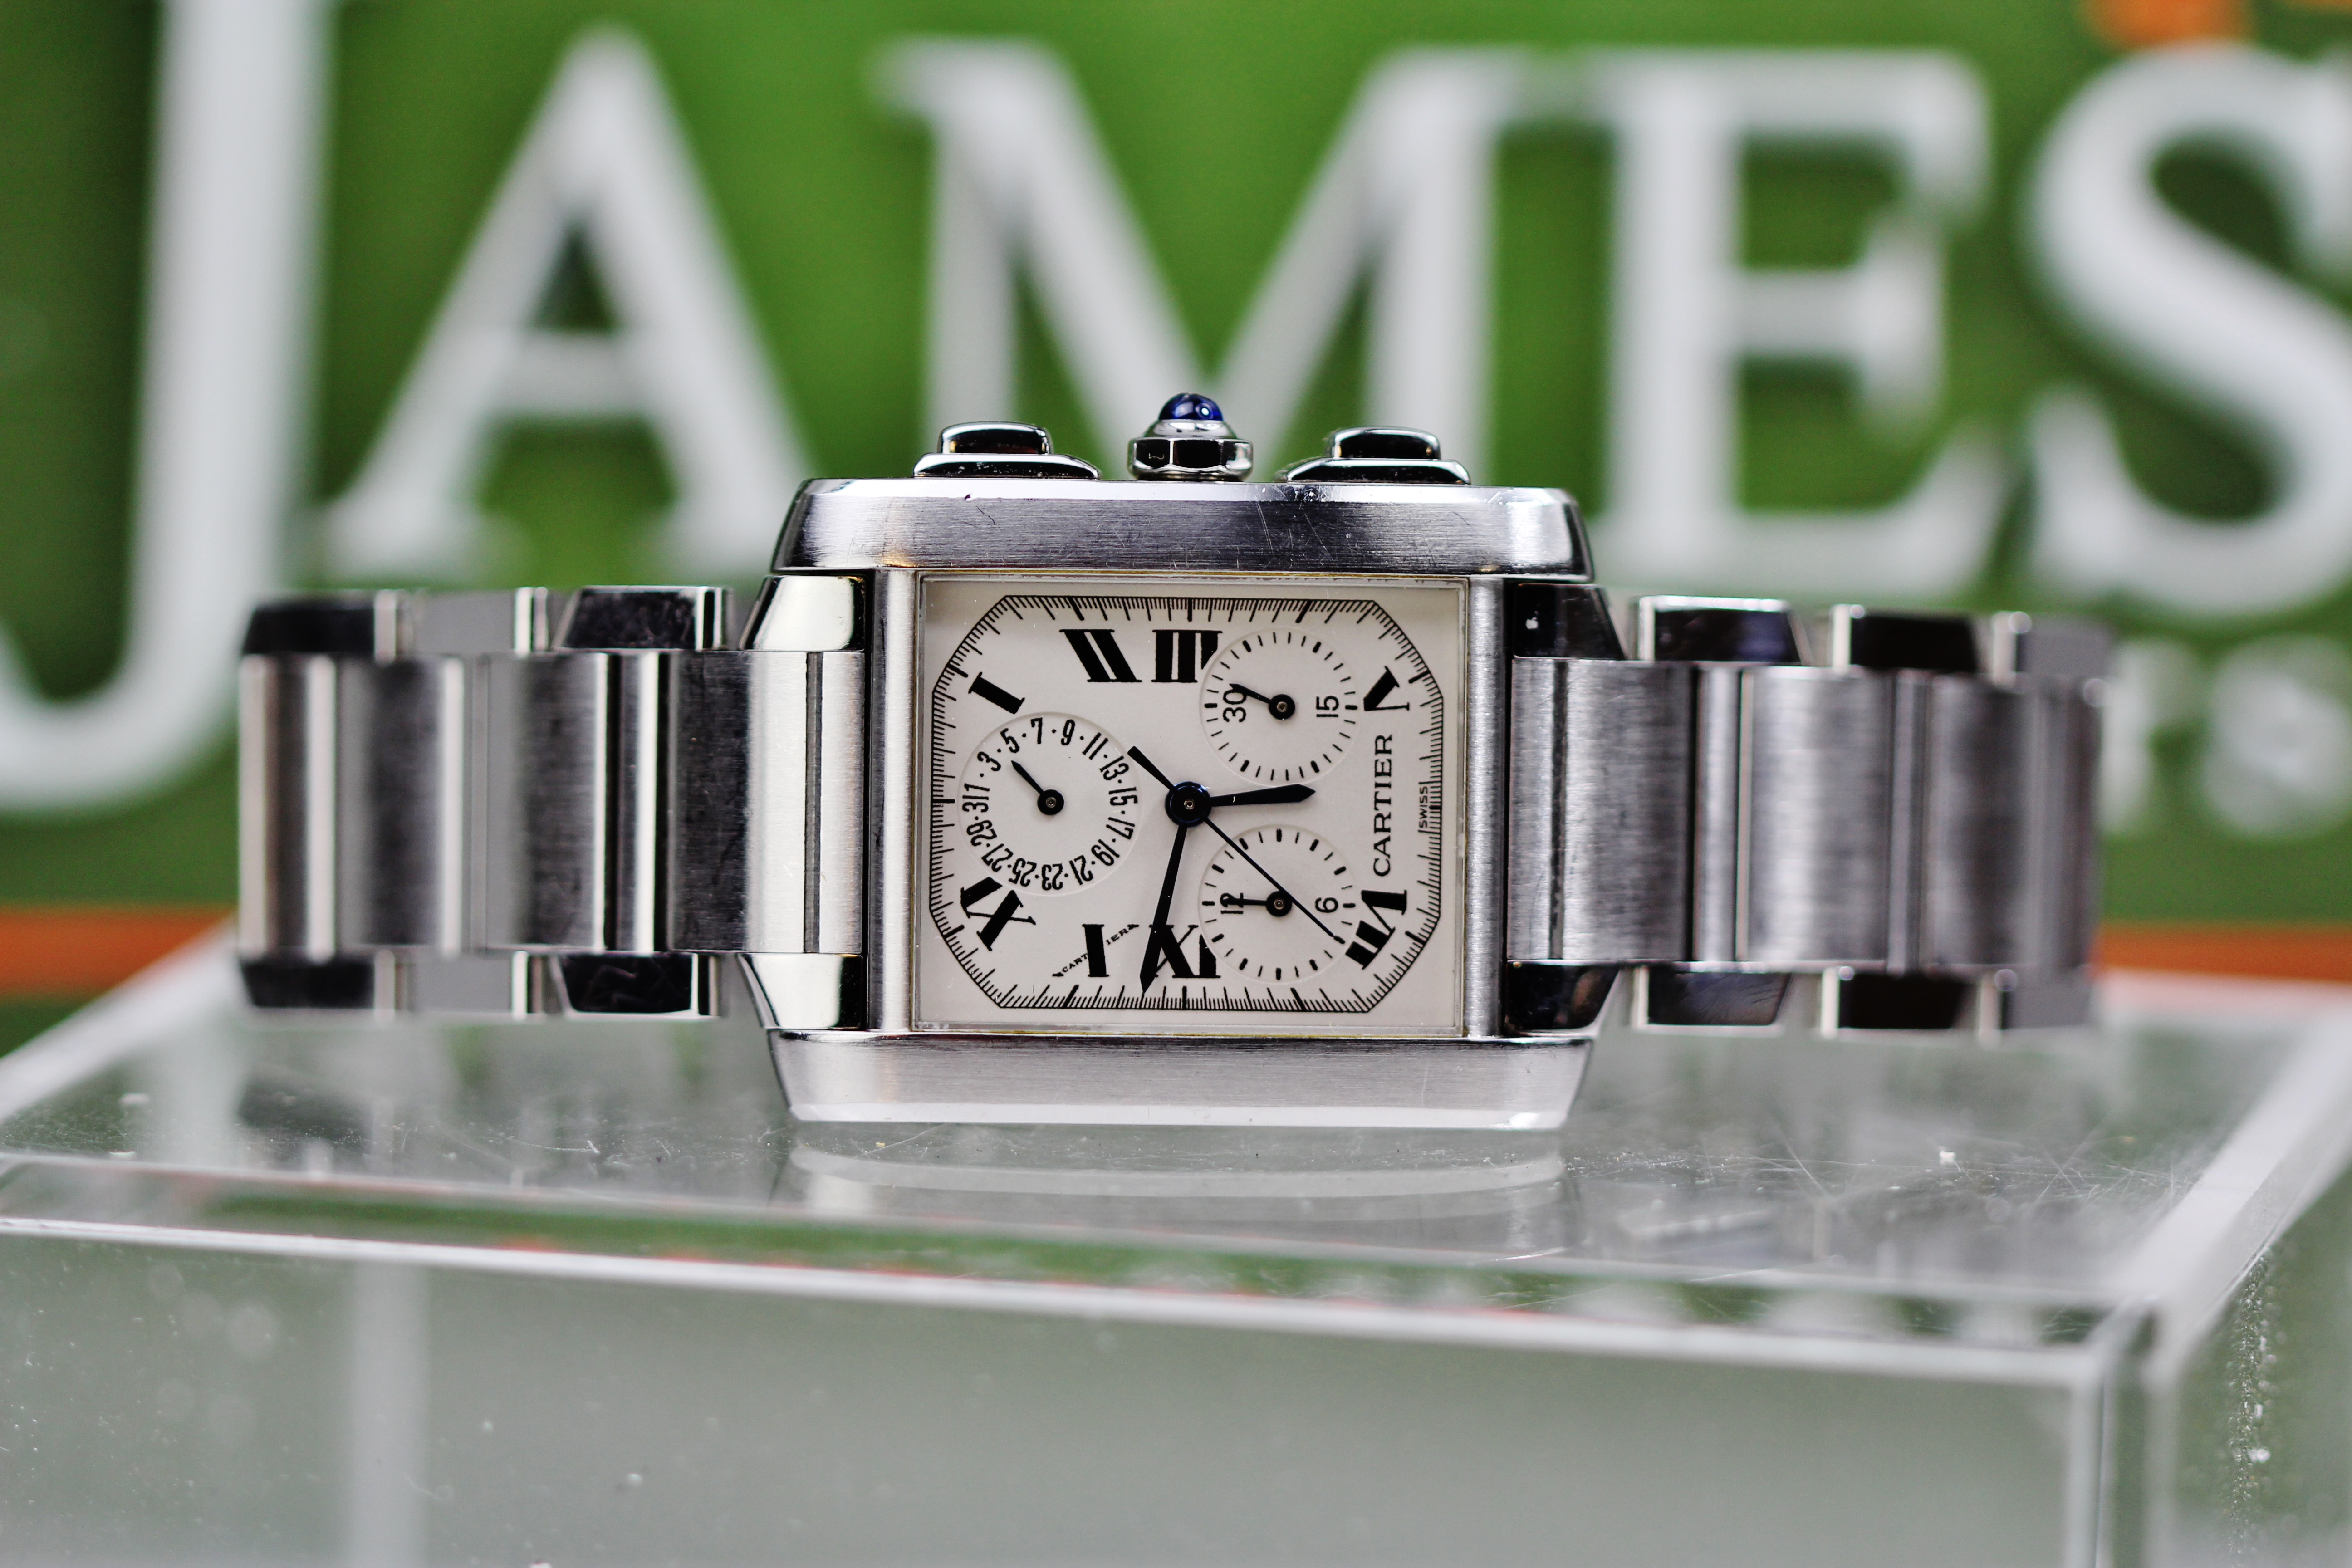 Lot 16 - Cartier Tank Francaise Chronoflex Chronograph